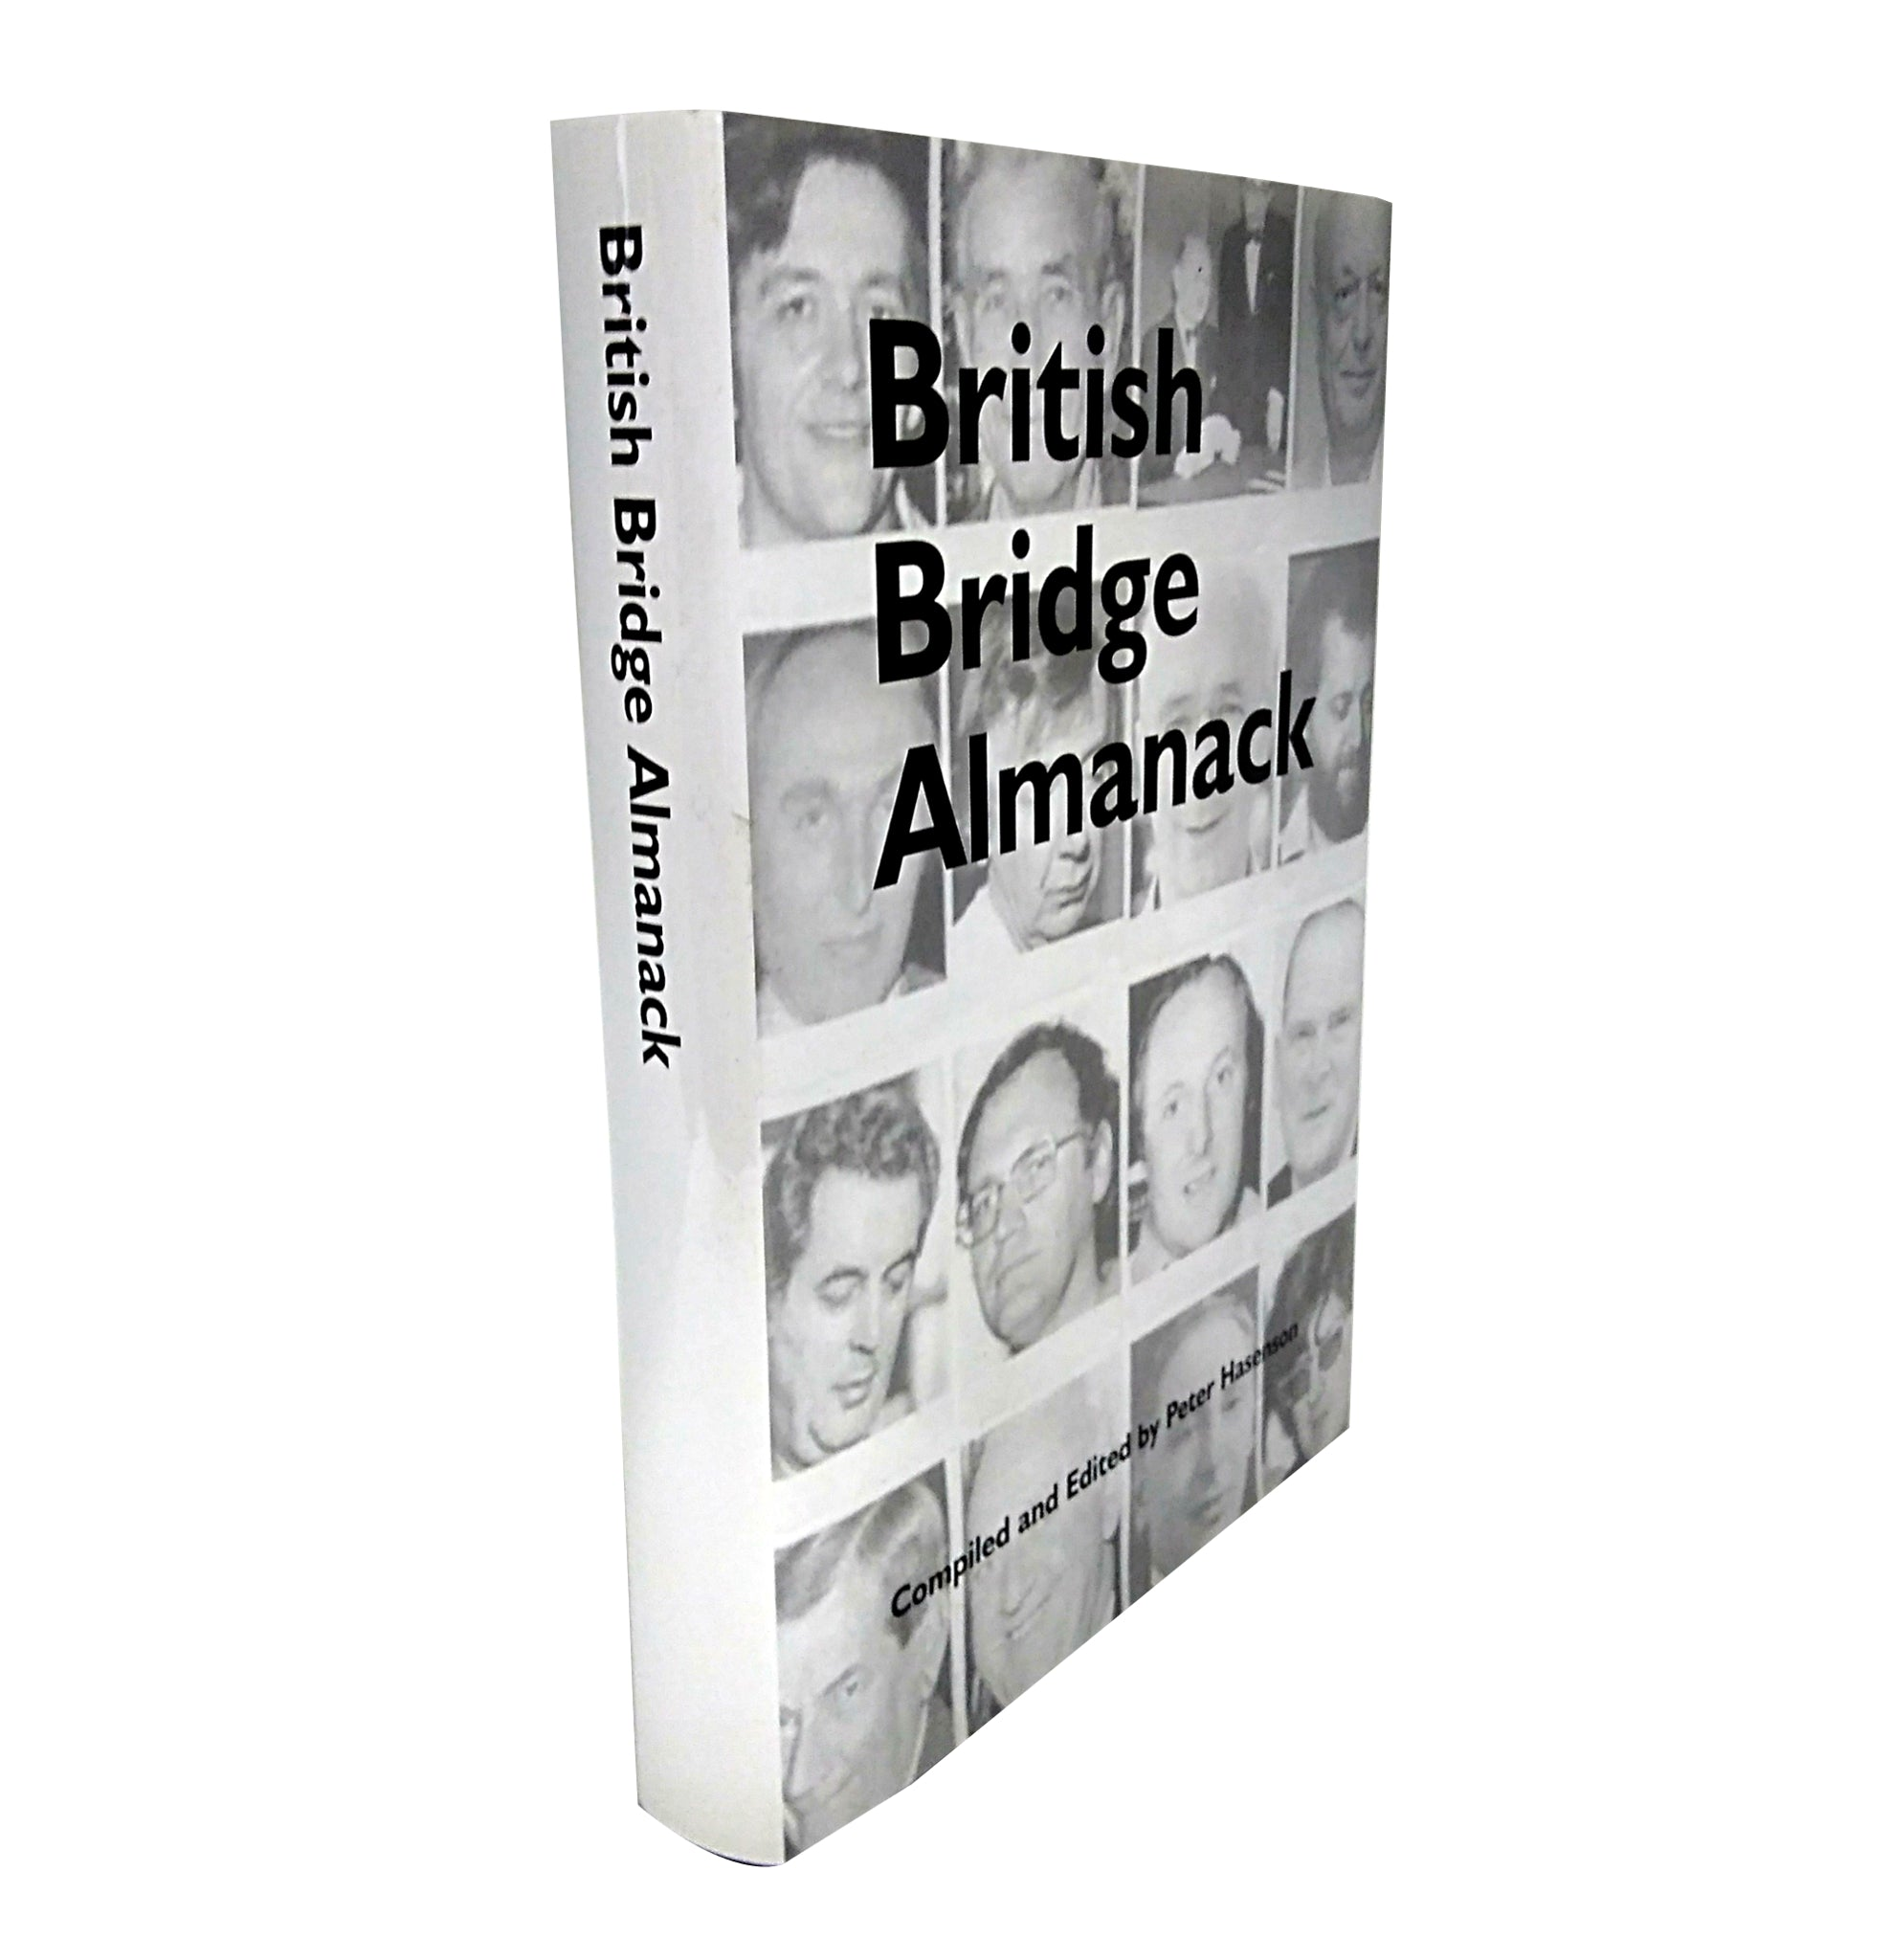 British Bridge Almanack